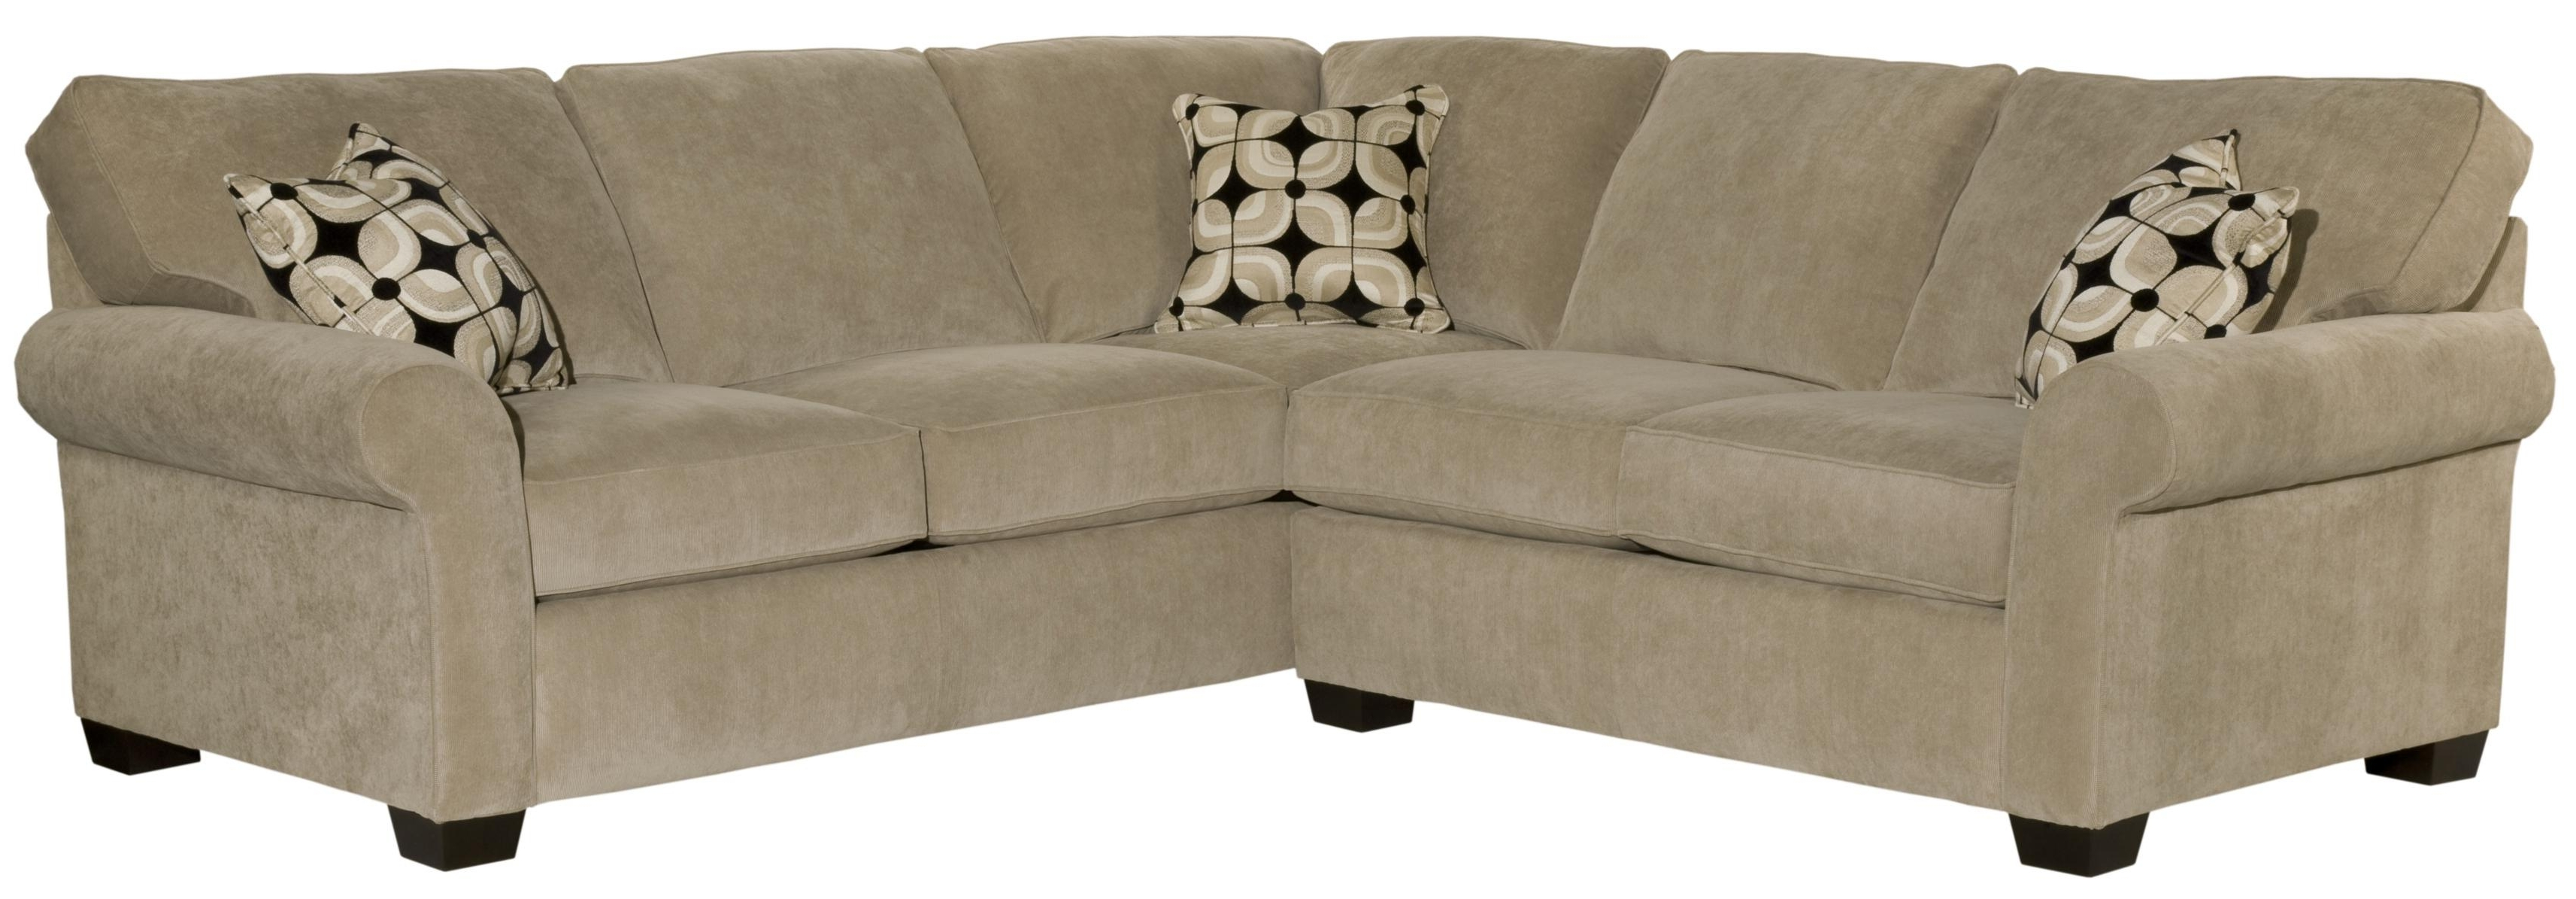 Broyhill Furniture Ethan Two Piece Sectional With Corner Sofa With Best And Newest Broyhill Sectional Sofas (View 4 of 20)